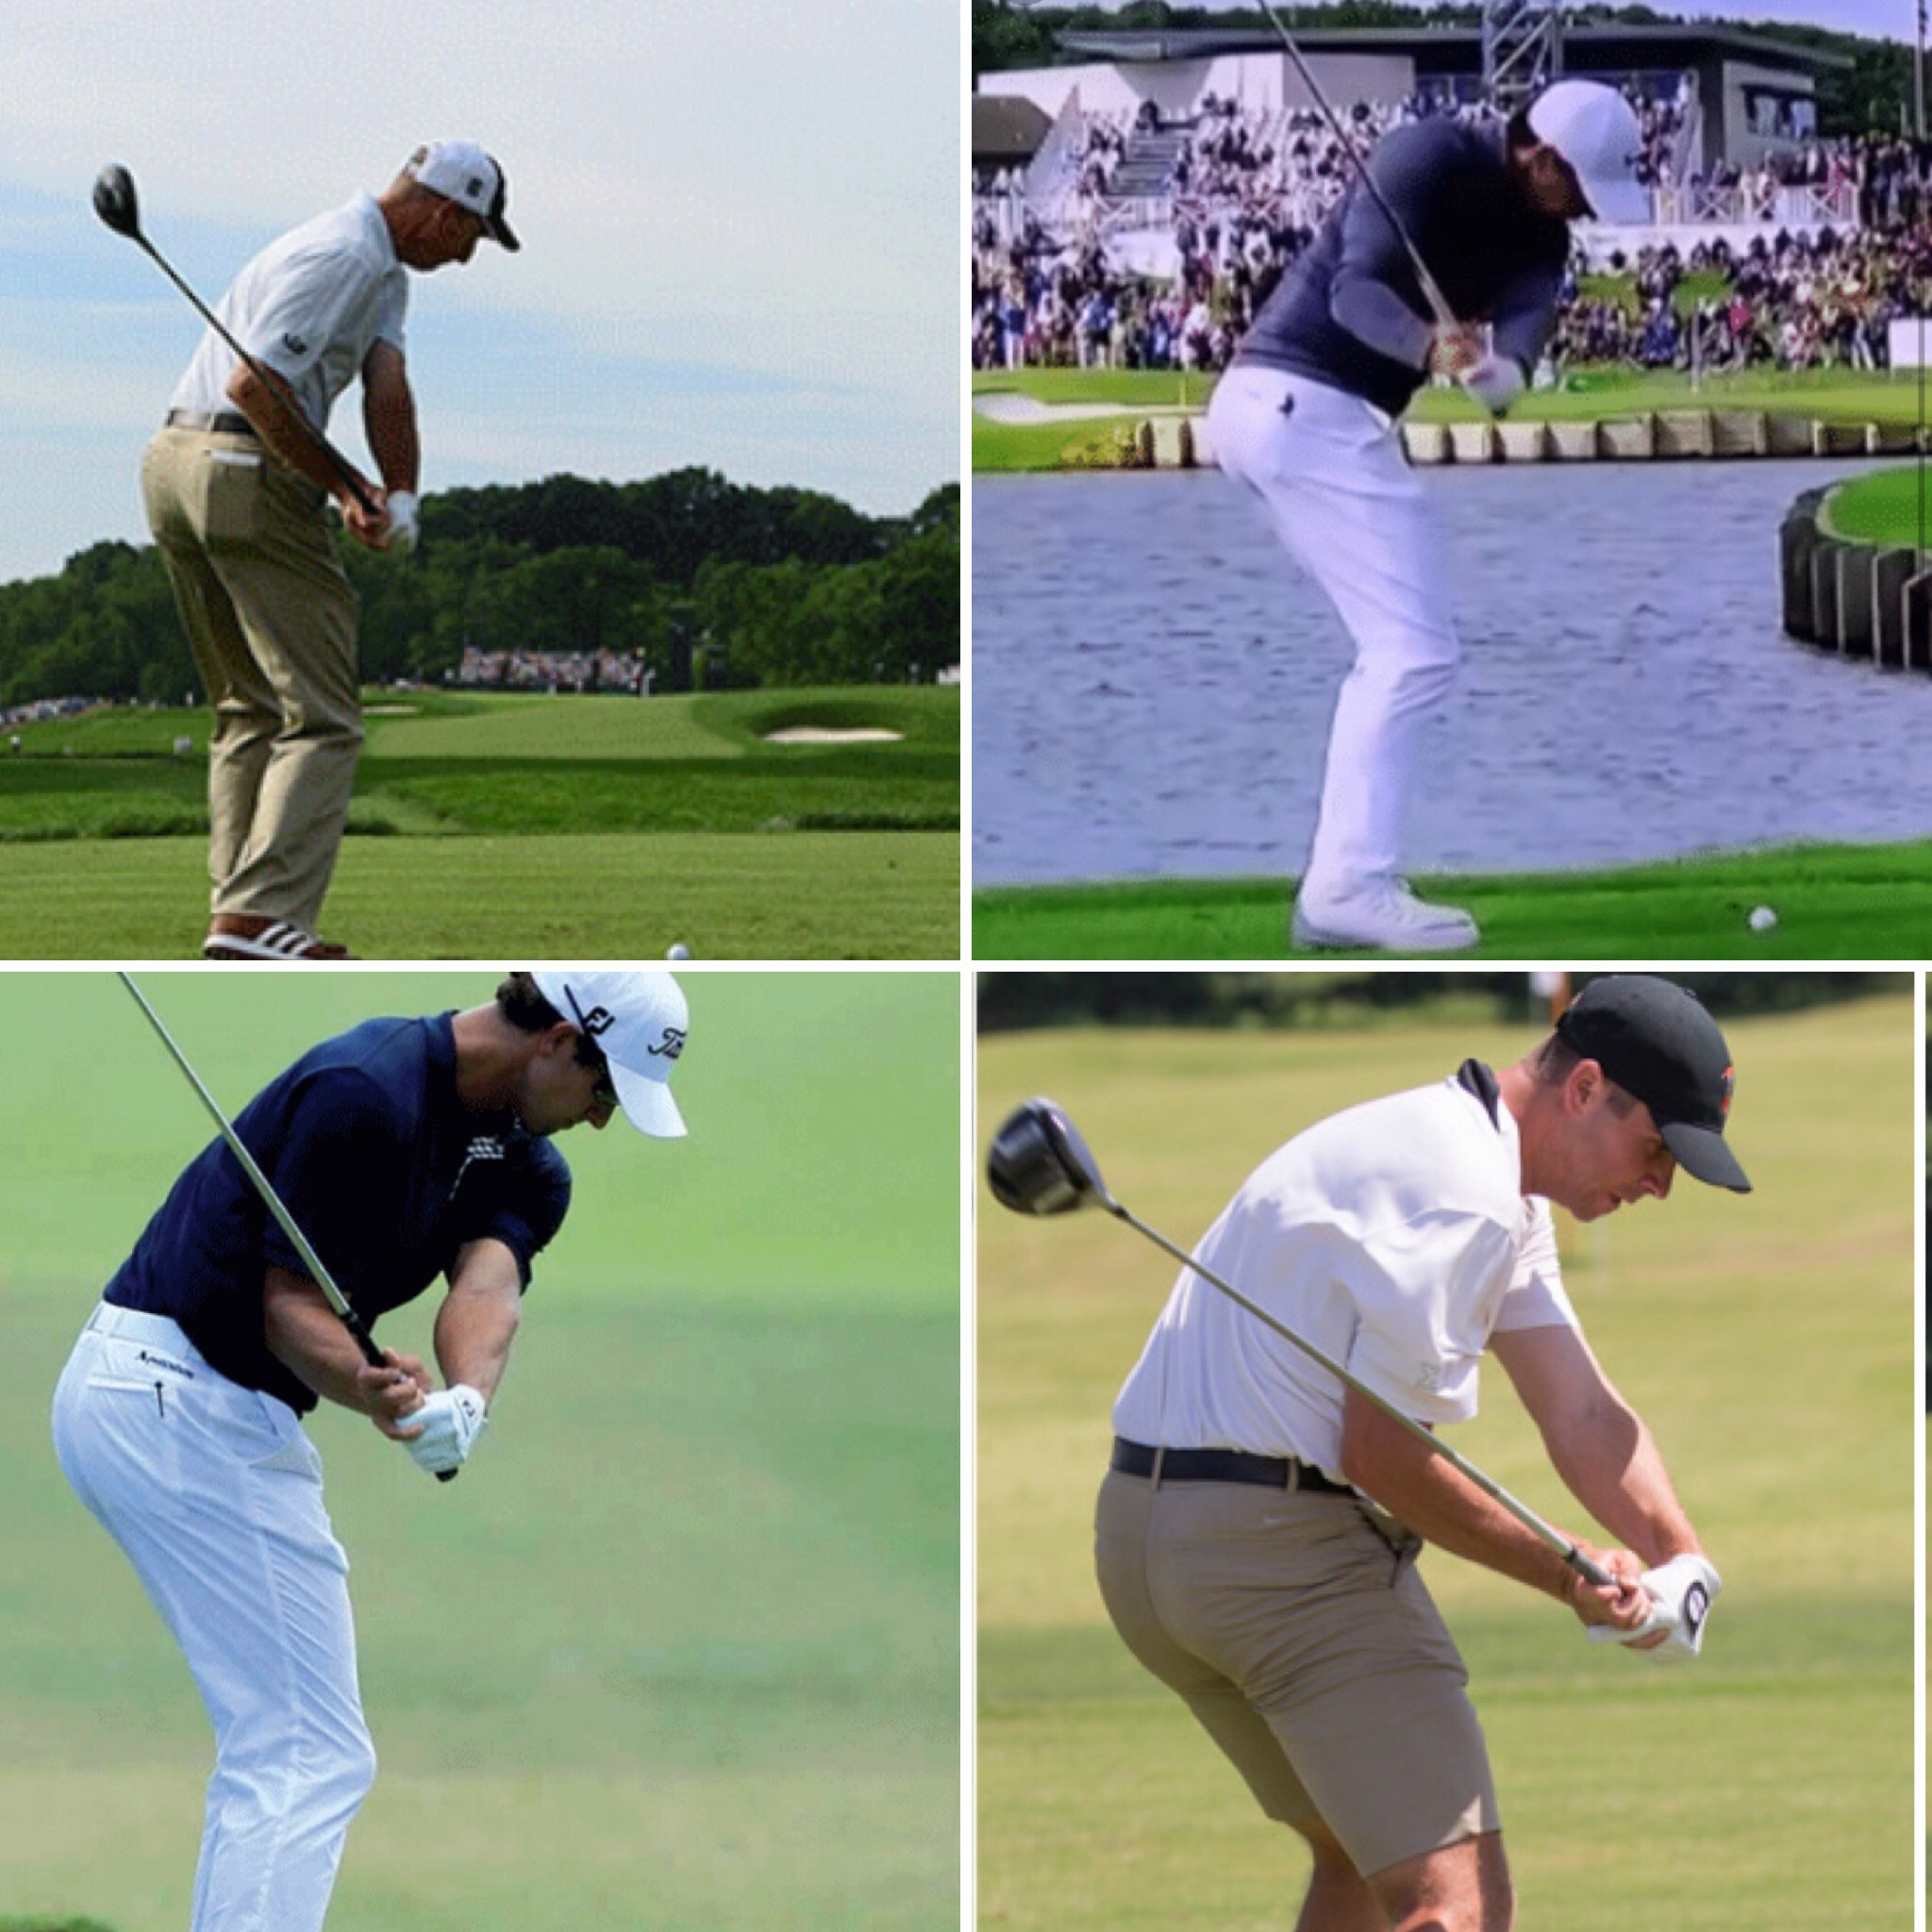 Examples of shallowing of various swing styles (Scott, Furyk, Els, McIllroy, Woods)